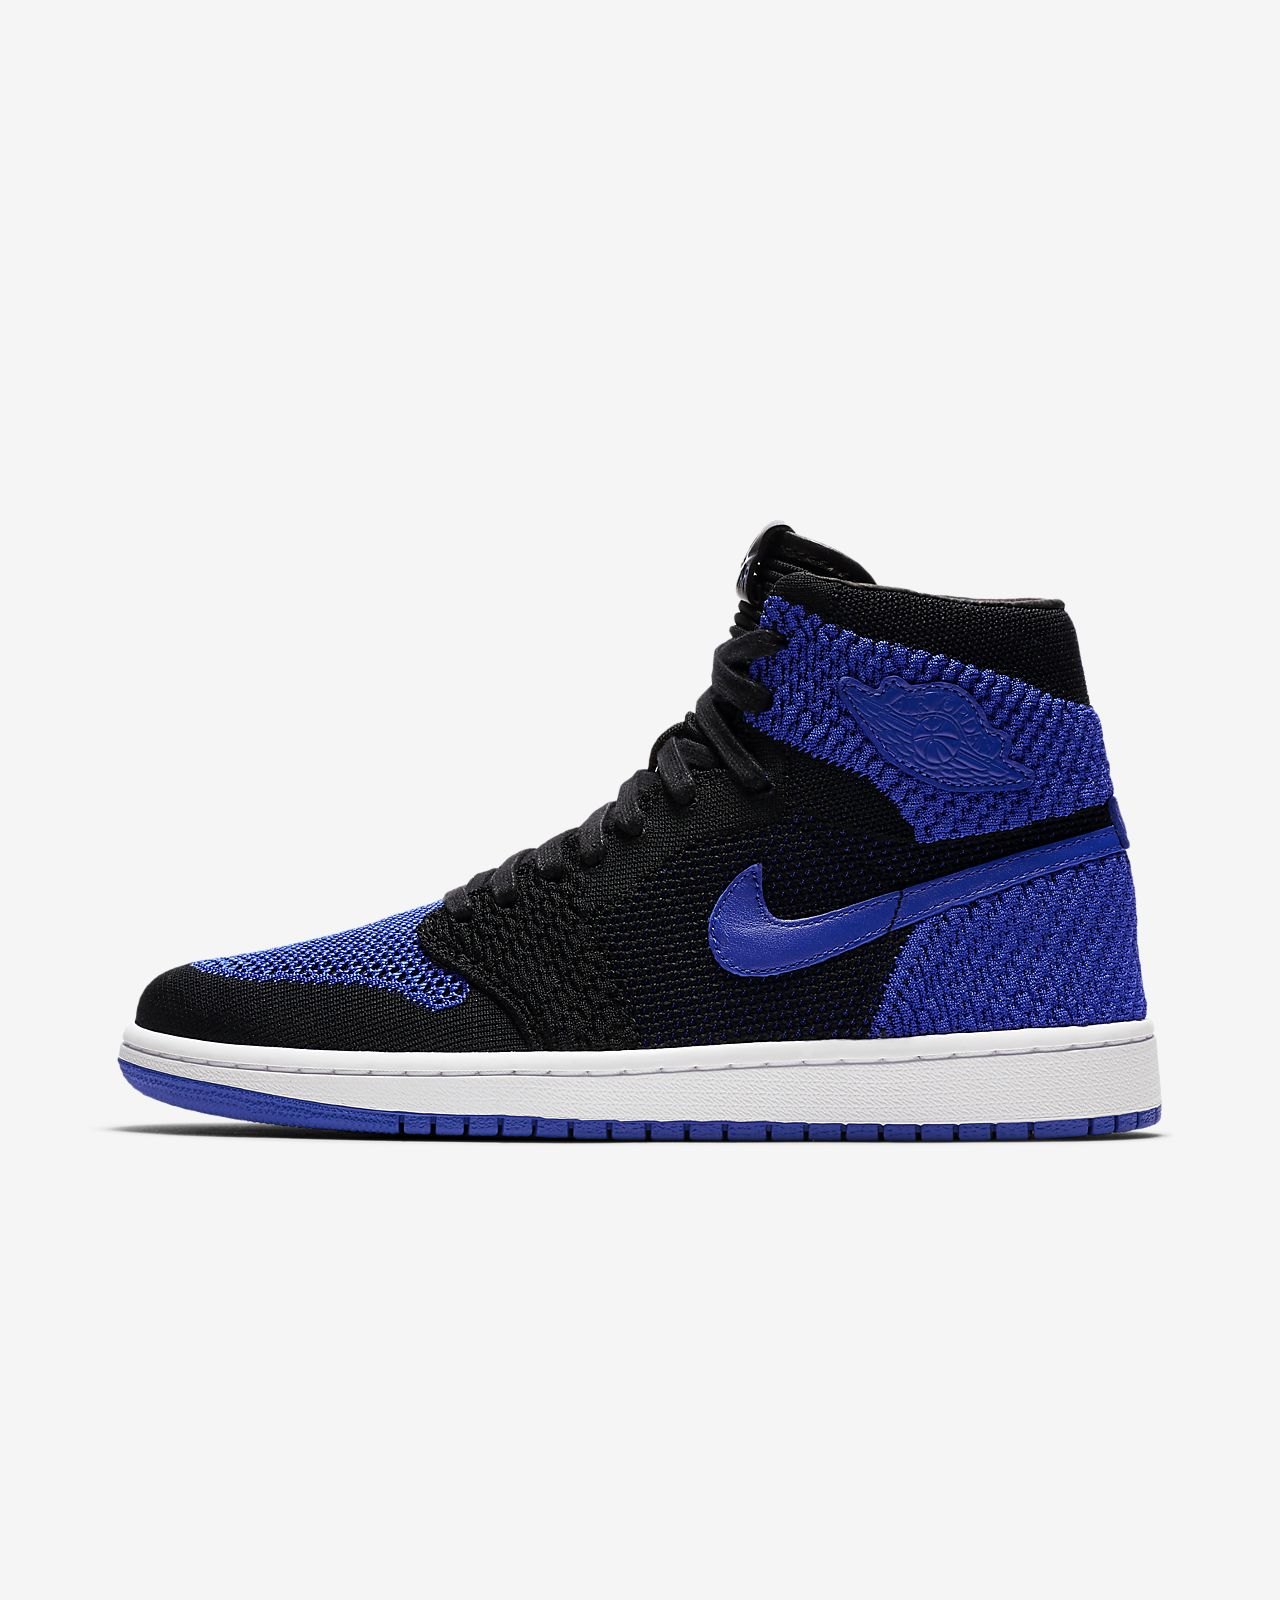 84395b67 Мужские кроссовки Air Jordan 1 Retro High Flyknit. Nike.com RU